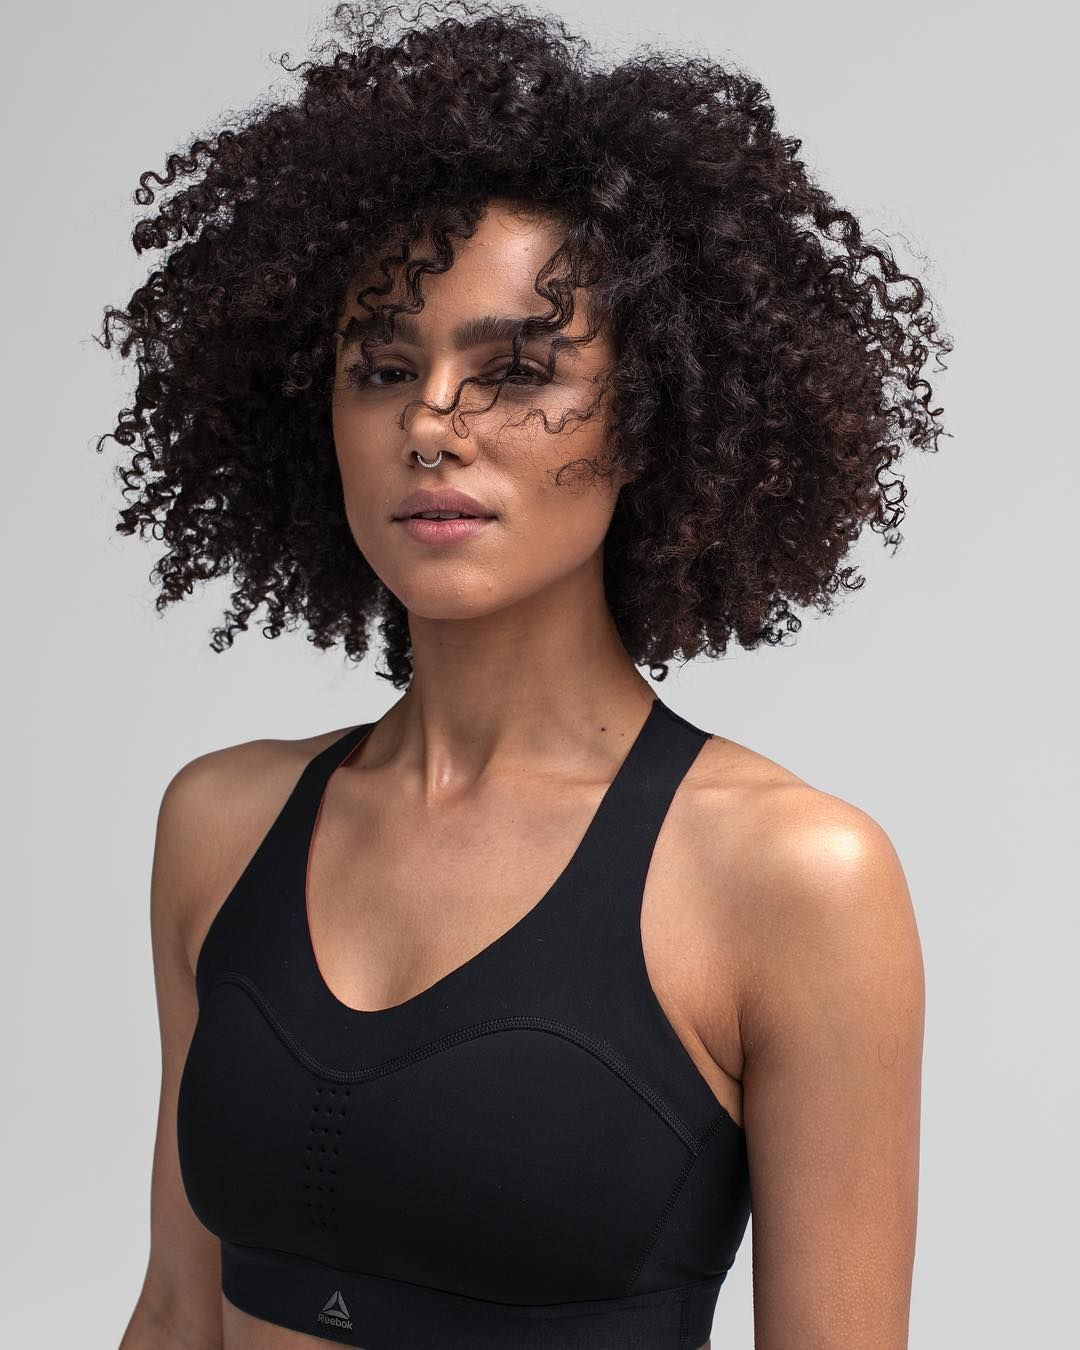 Discussion on this topic: Chelsea Brown, nathalie-emmanuel-born-1989/